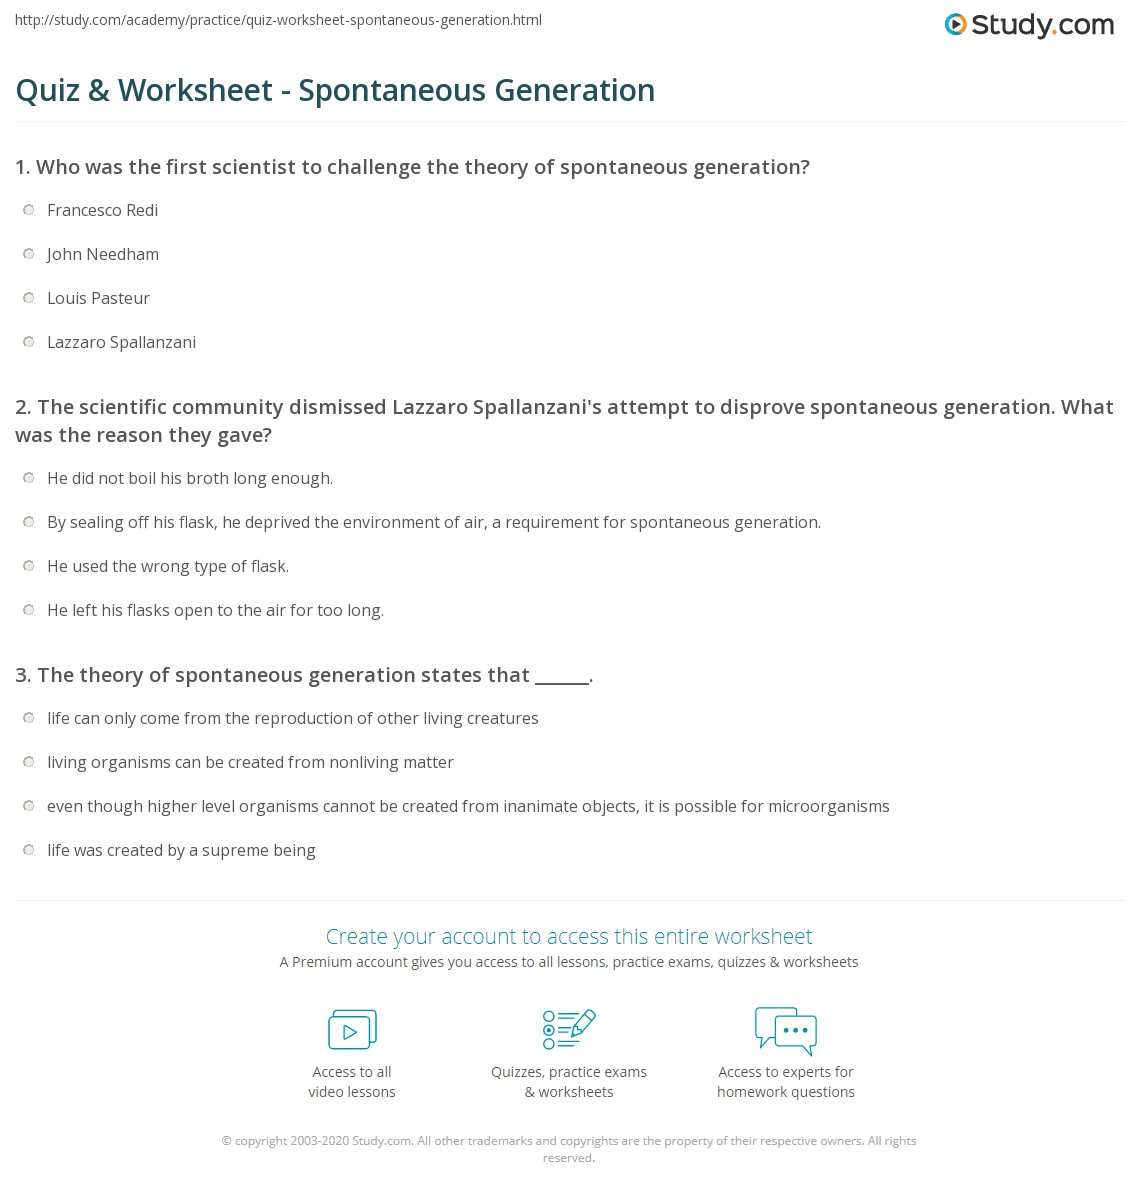 Aldiablosus  Unique Quiz Amp Worksheet  Spontaneous Generation  Studycom With Lovely Print Spontaneous Generation Definition Theory Amp Examples Worksheet With Breathtaking Ew Phonics Worksheets Also Fun Maths Worksheets Ks In Addition Standard Units Of Measurement Worksheets And Lcm Problems Worksheet As Well As Long And Short I Worksheets Additionally Printable Venn Diagram Worksheet From Studycom With Aldiablosus  Lovely Quiz Amp Worksheet  Spontaneous Generation  Studycom With Breathtaking Print Spontaneous Generation Definition Theory Amp Examples Worksheet And Unique Ew Phonics Worksheets Also Fun Maths Worksheets Ks In Addition Standard Units Of Measurement Worksheets From Studycom